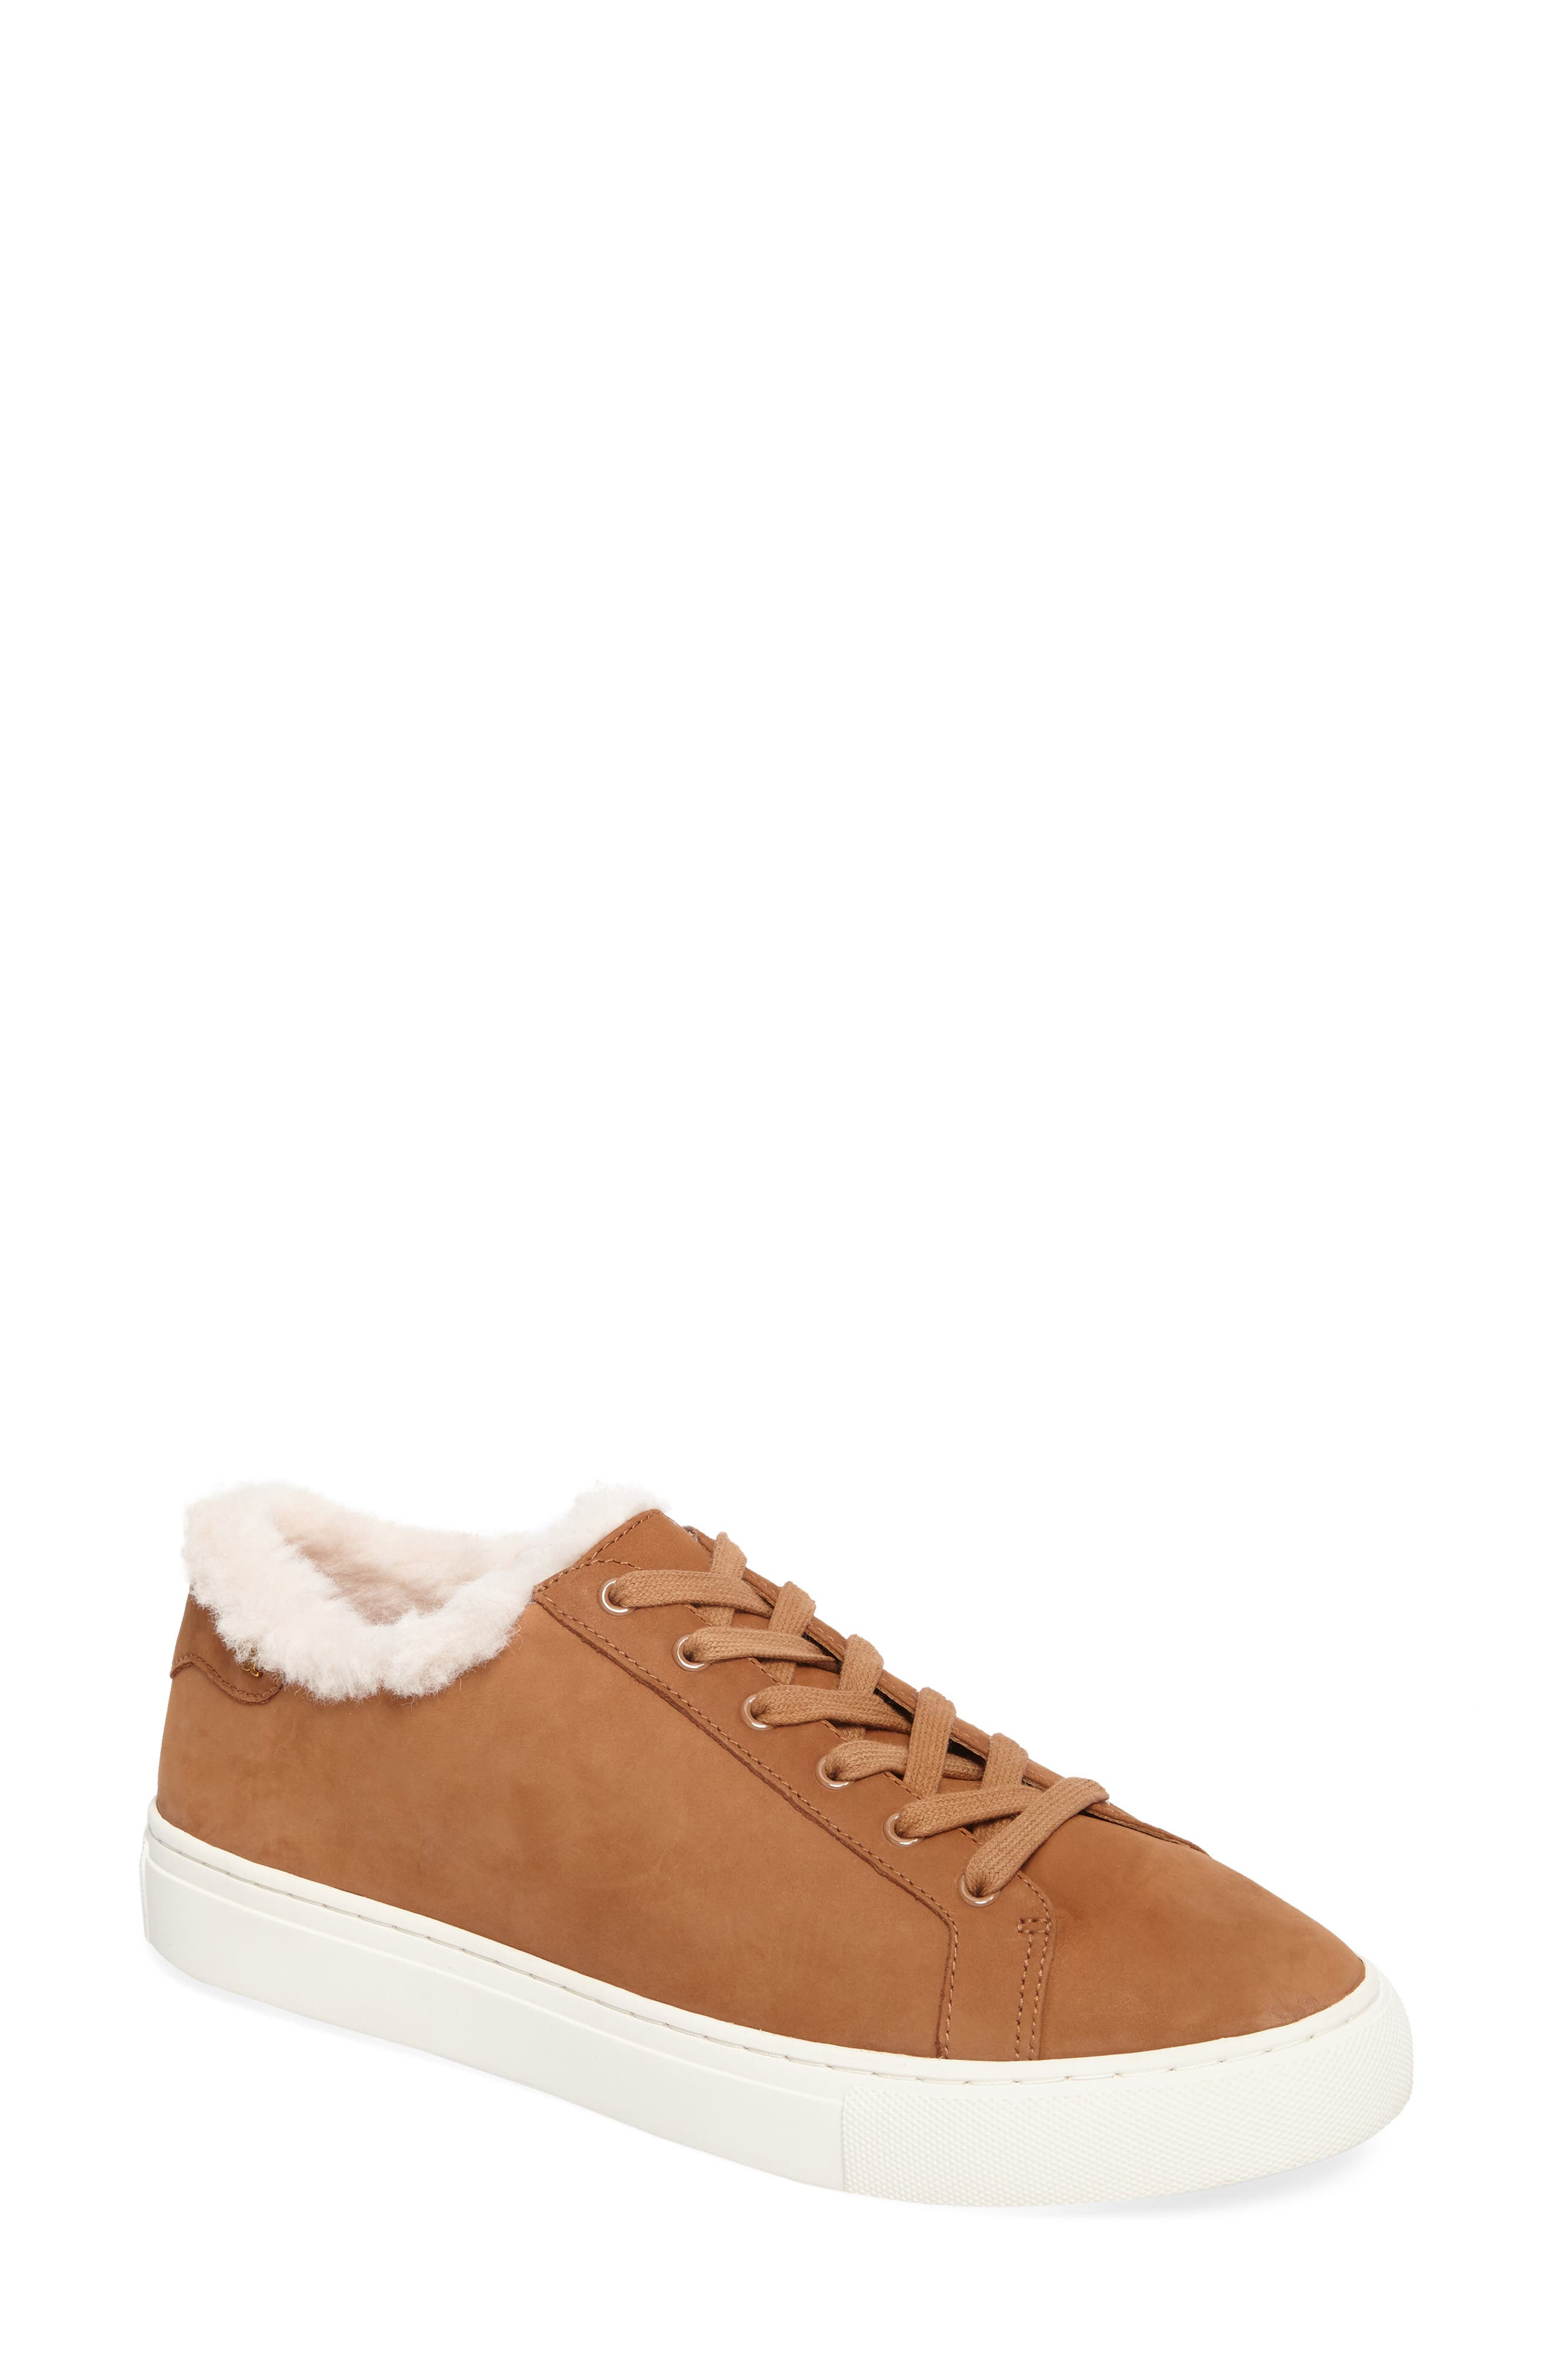 Lawrence Genuine Shearling Lined Sneaker,                             Main thumbnail 2, color,